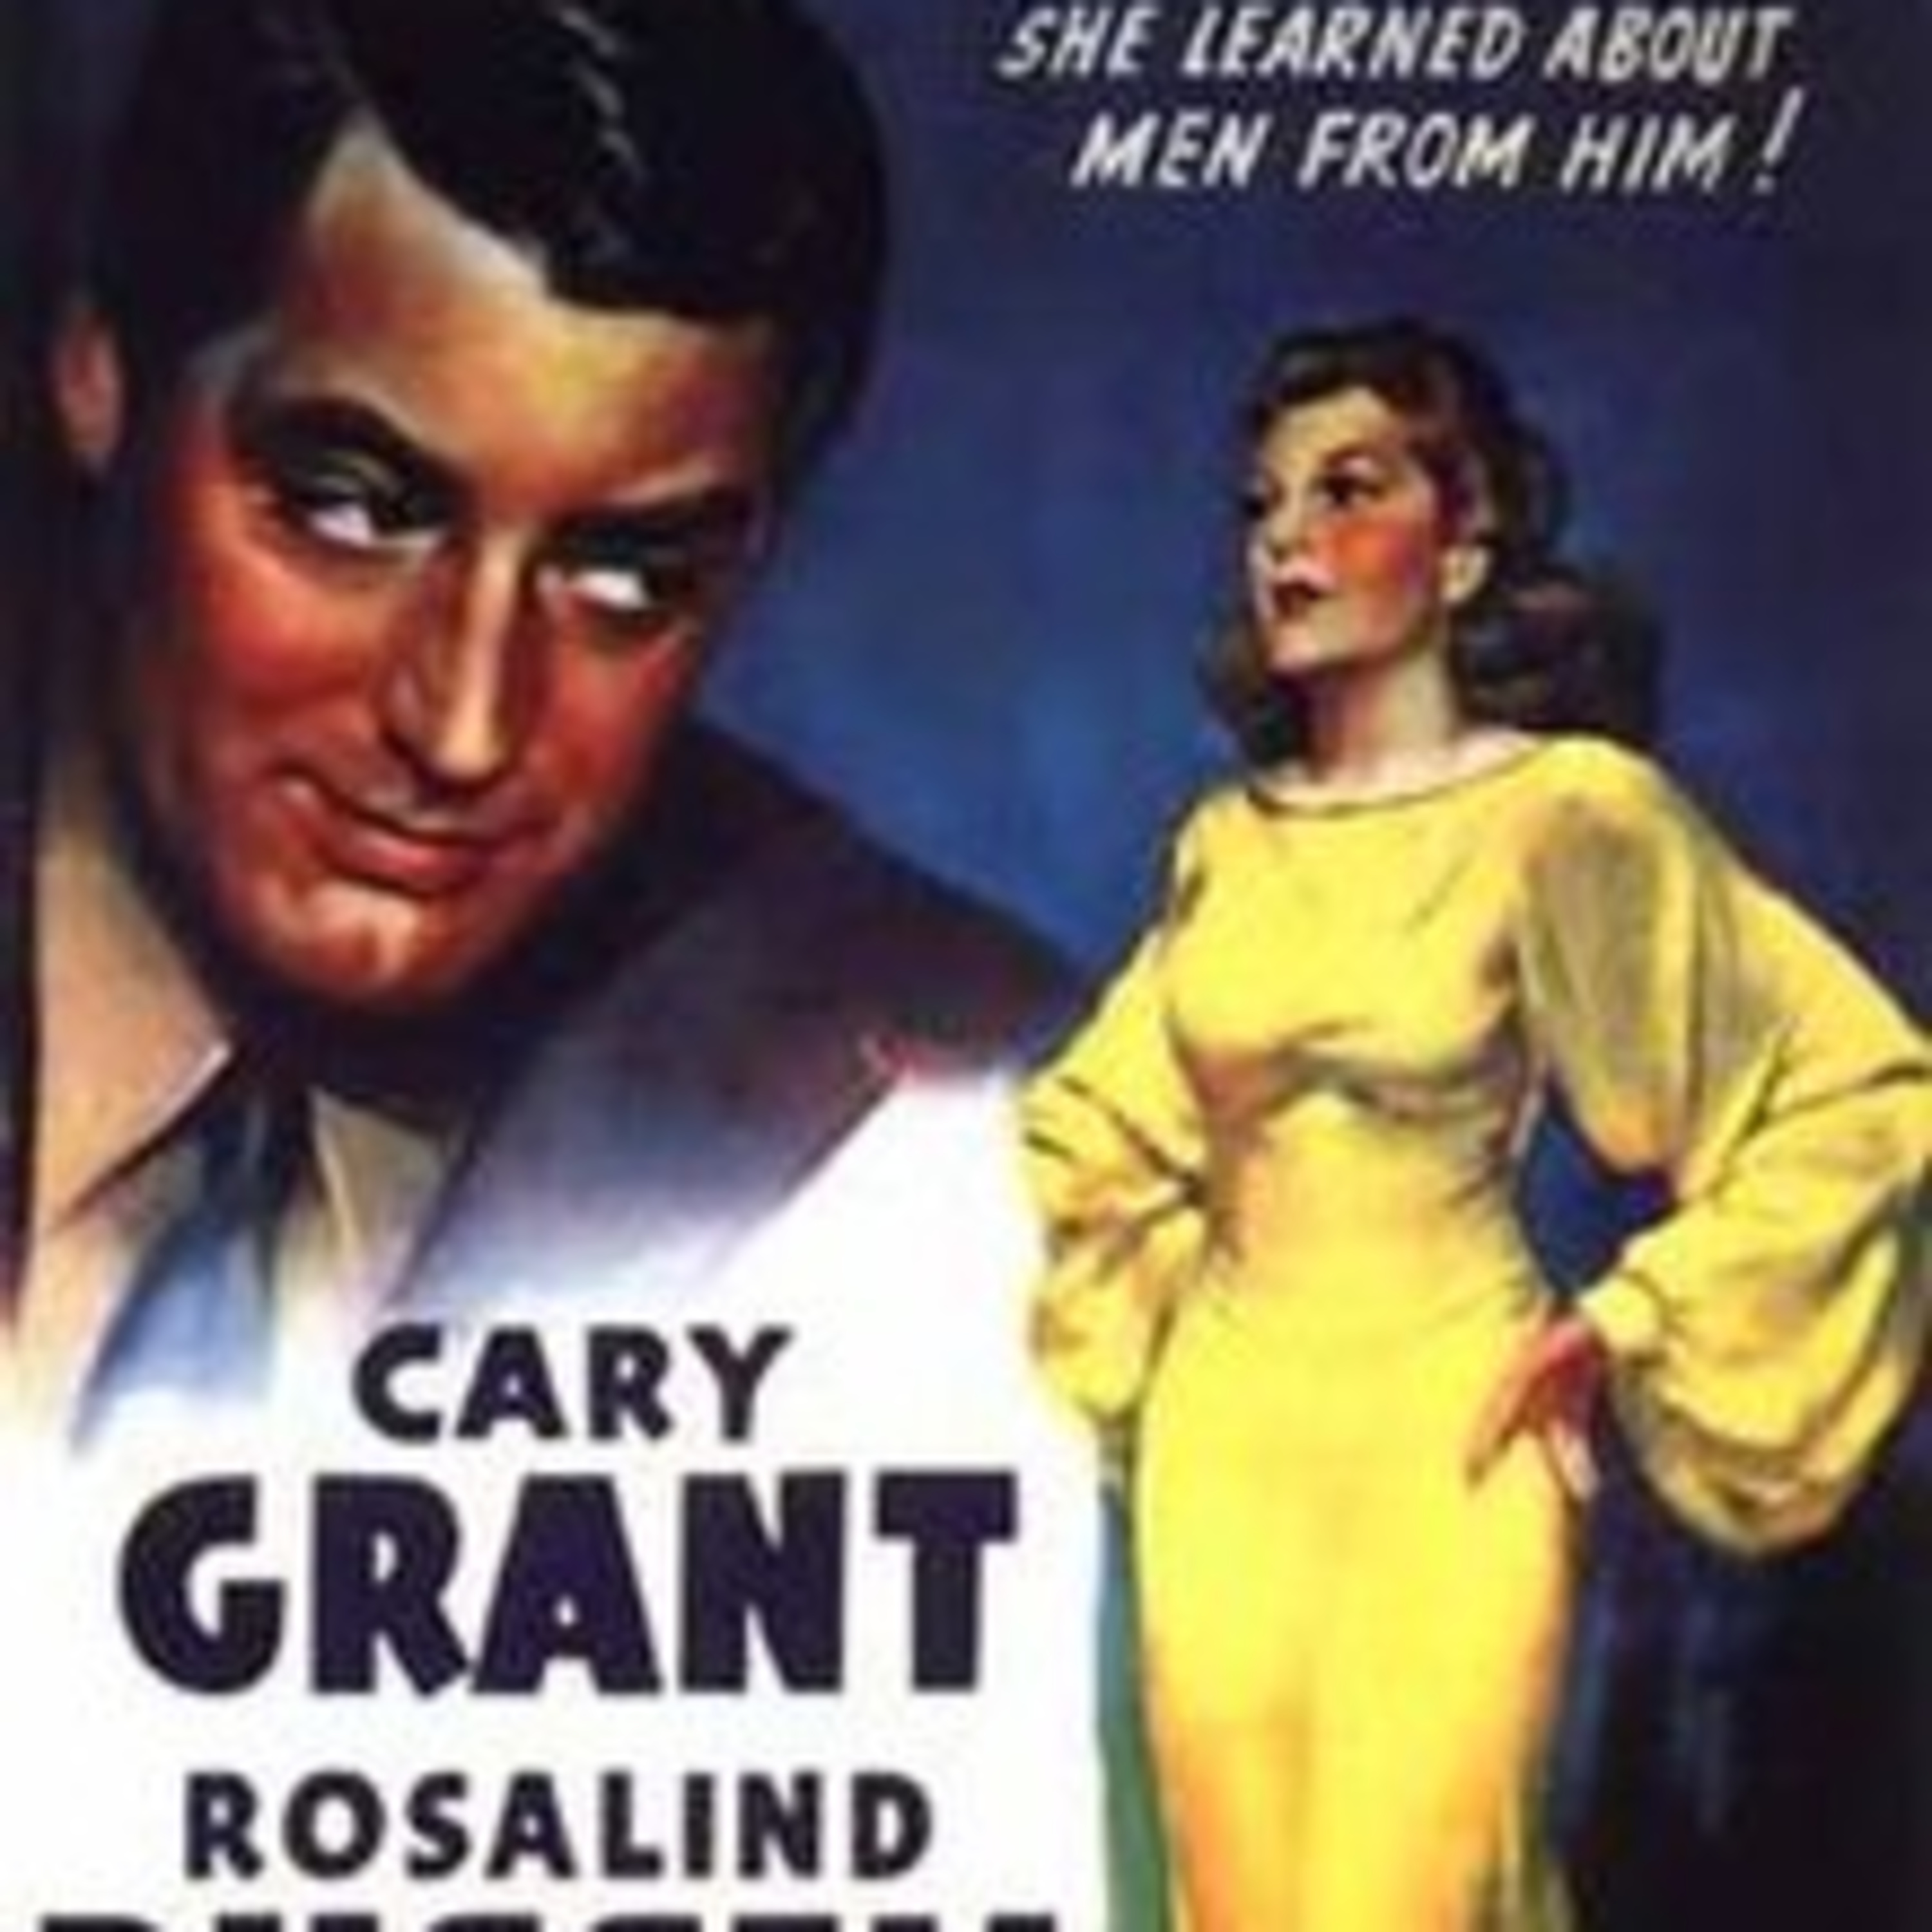 His Girl Friday - Claudette Colbert & Fred MacMurray - All-Star Radio Dramas of Classic Films - Lux Radio Theater